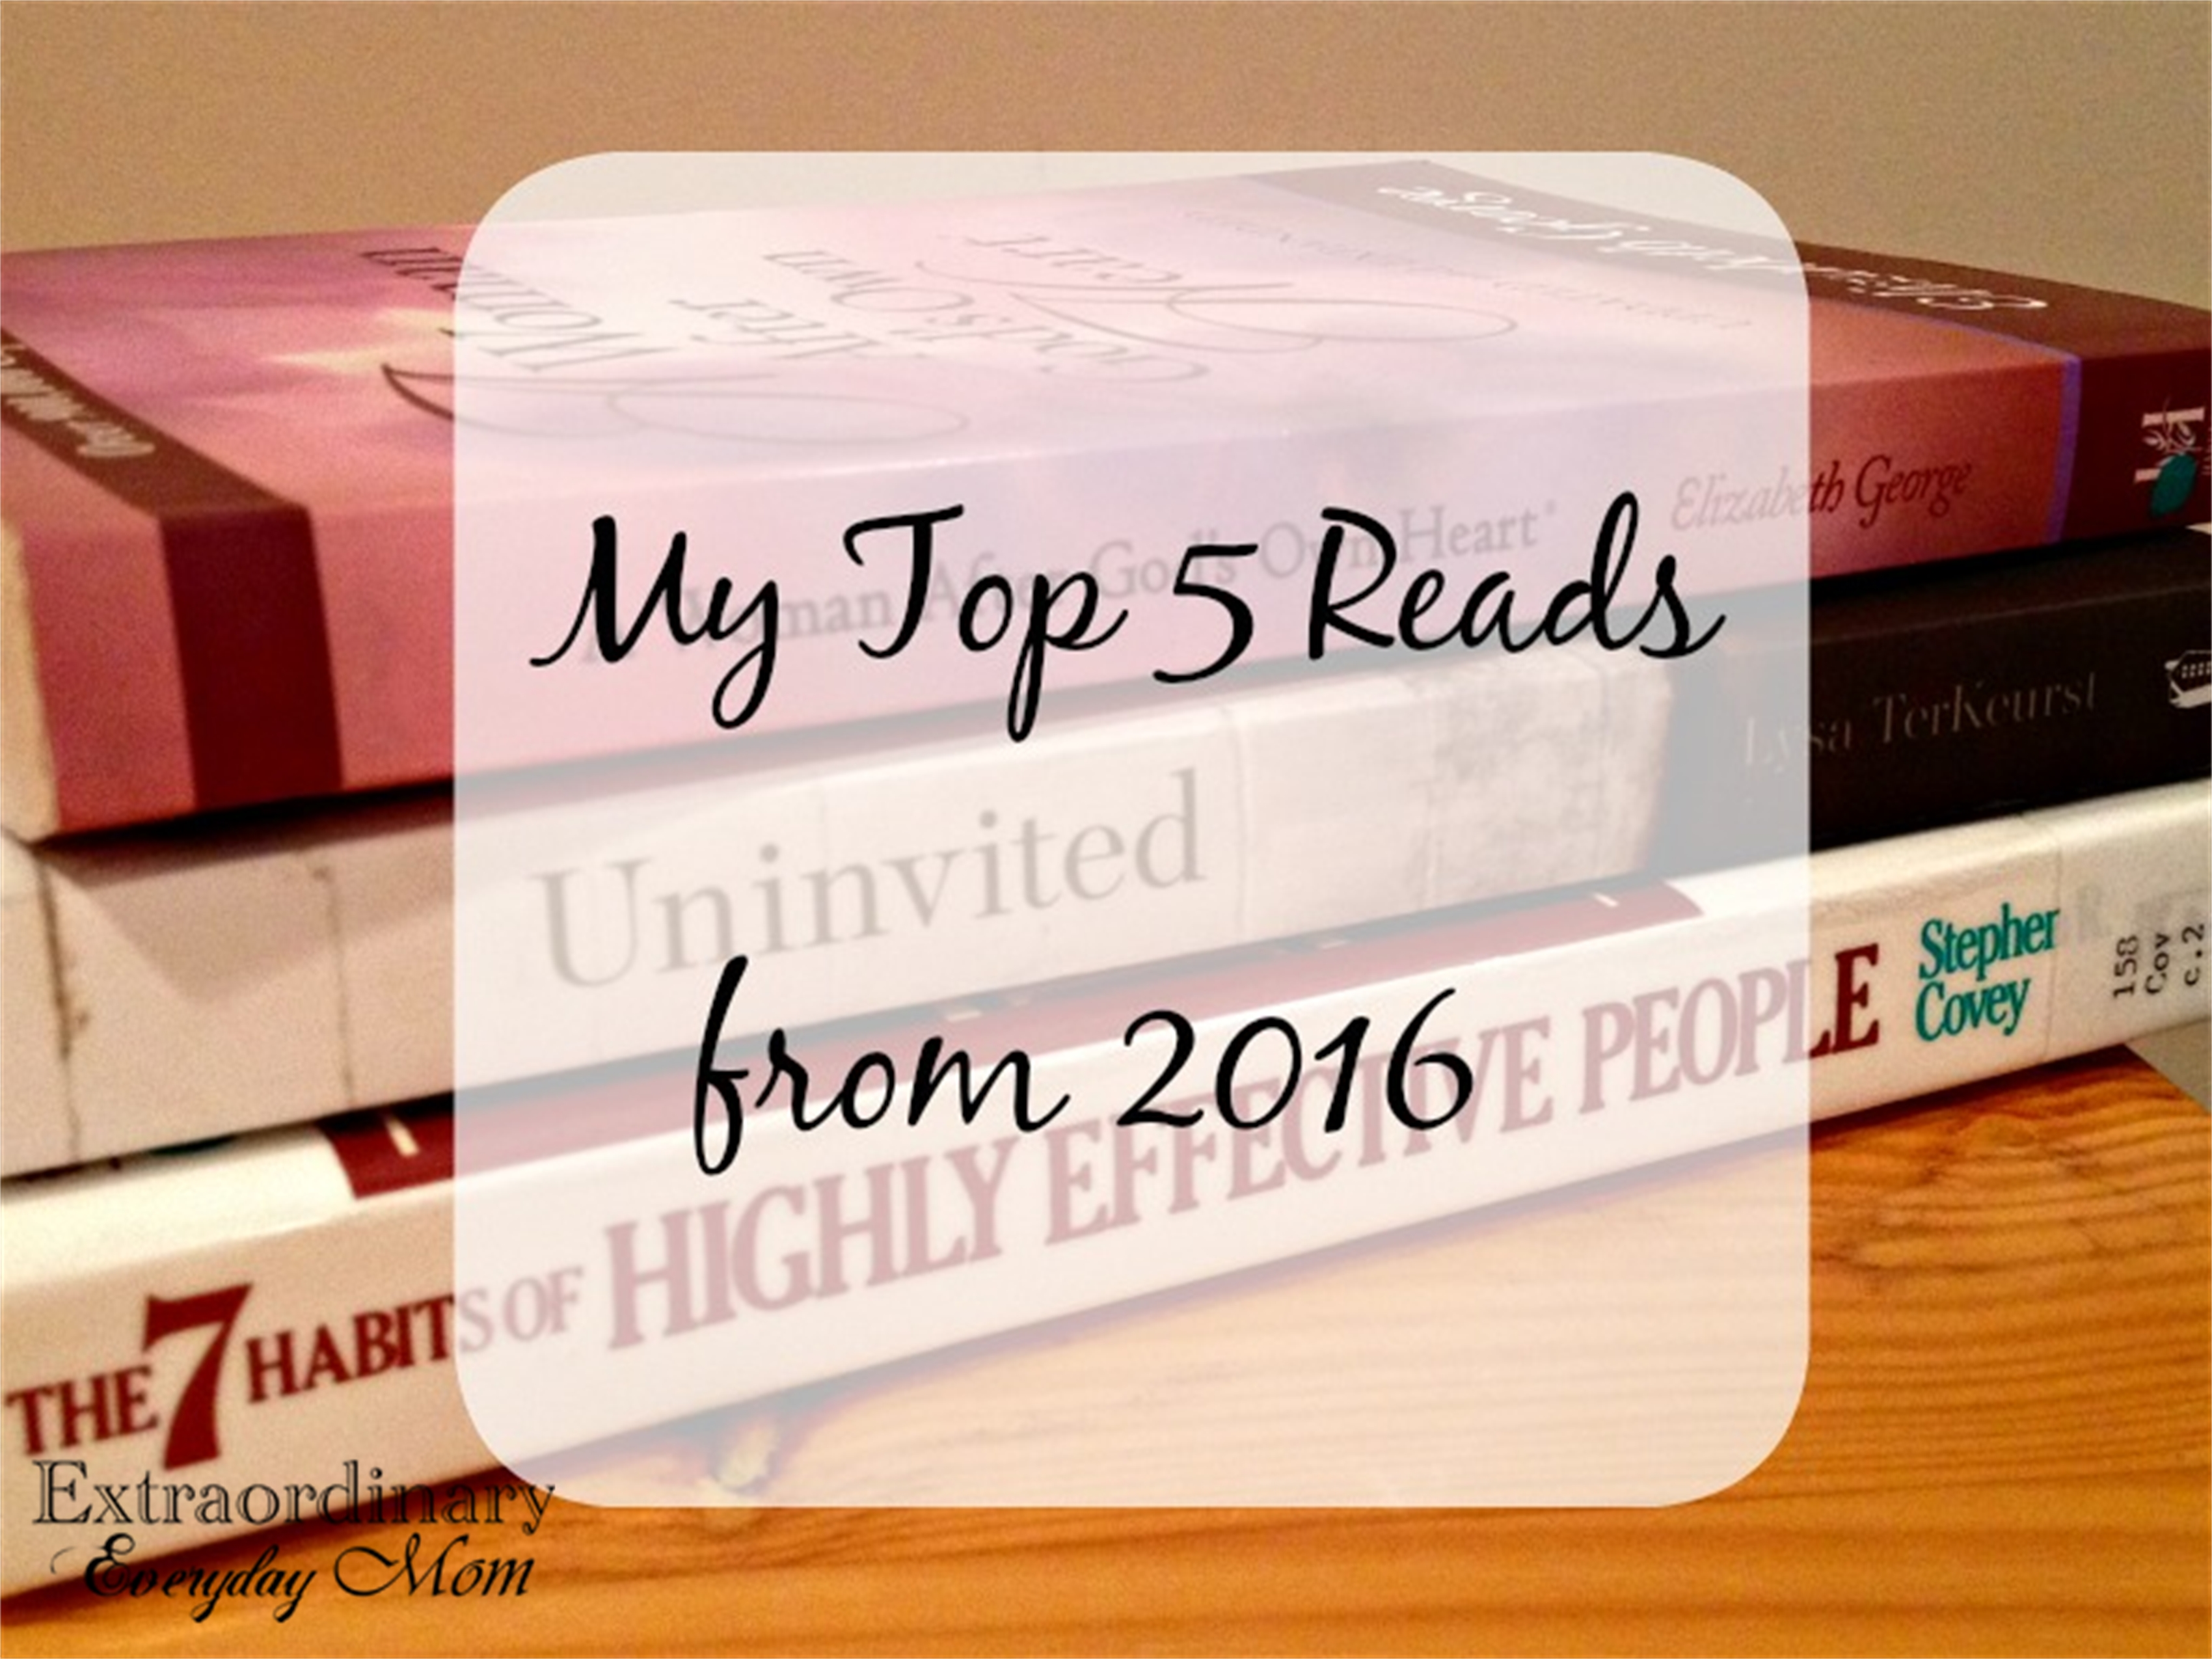 My Top 5 Reads from 2016